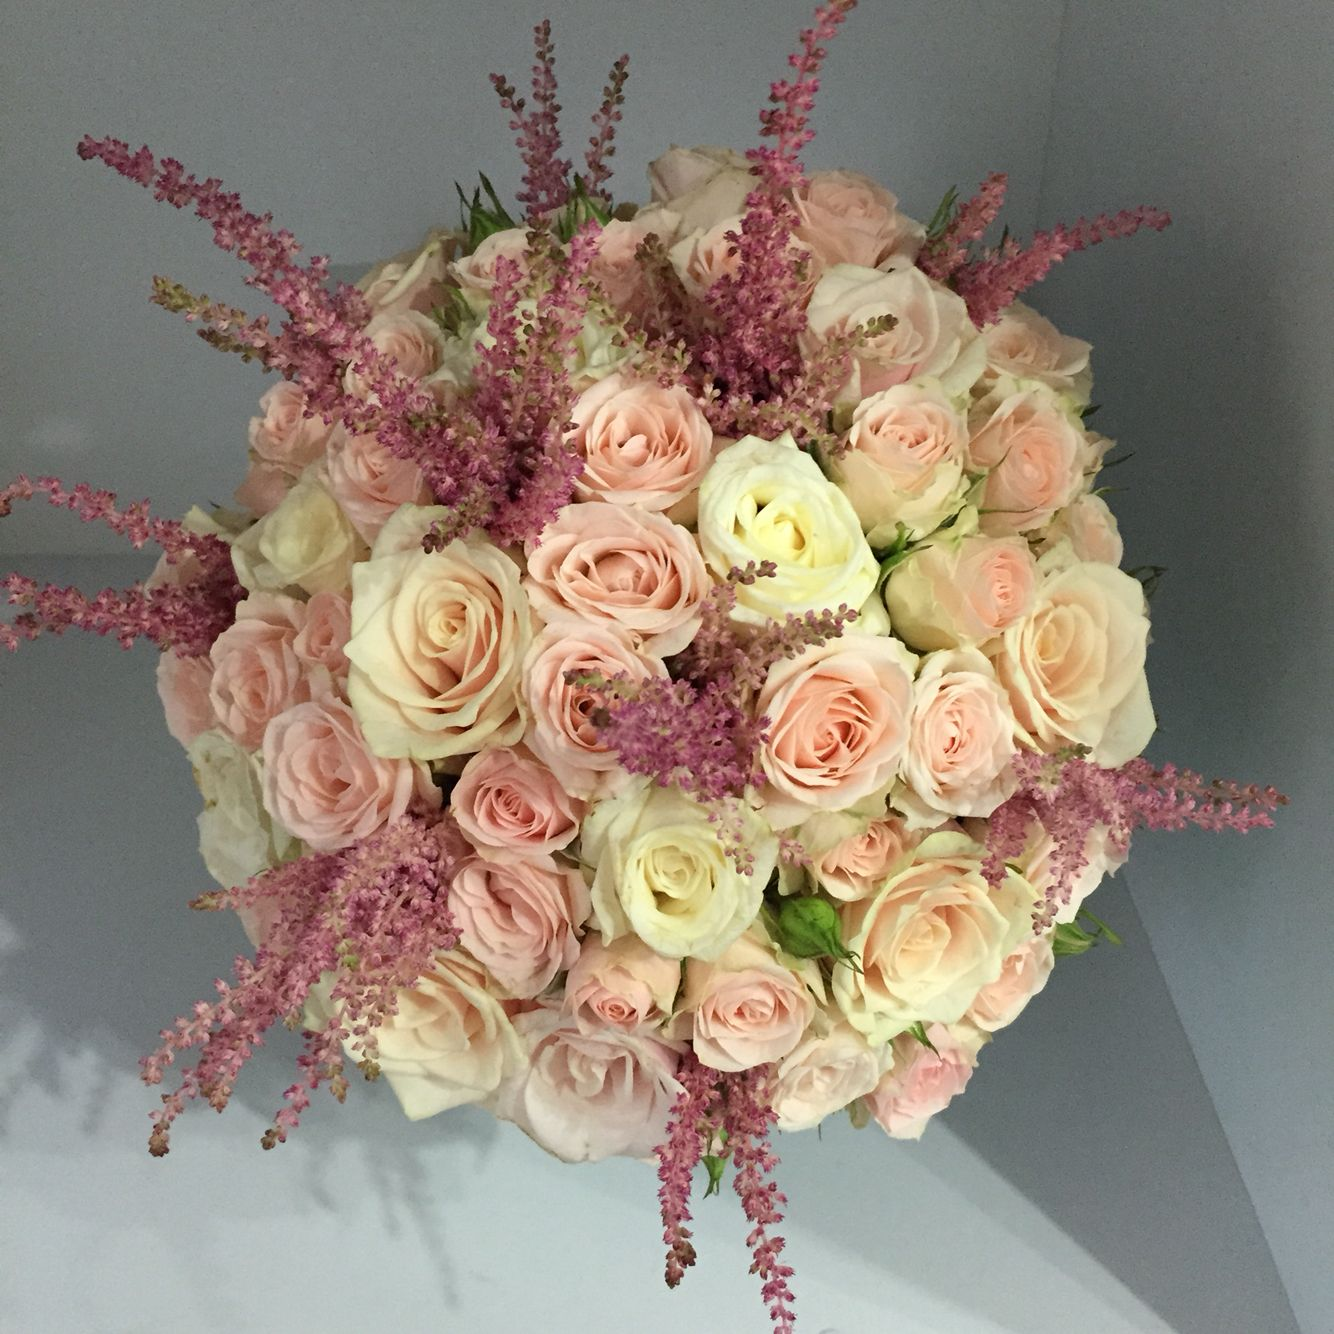 Buchet mireasa art decor pinterest